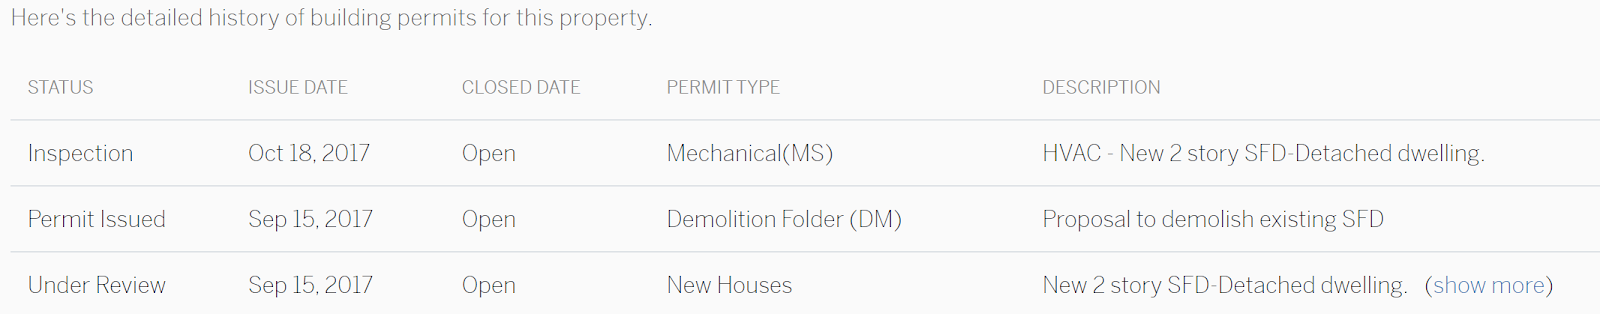 Building Permit Table Screenshot